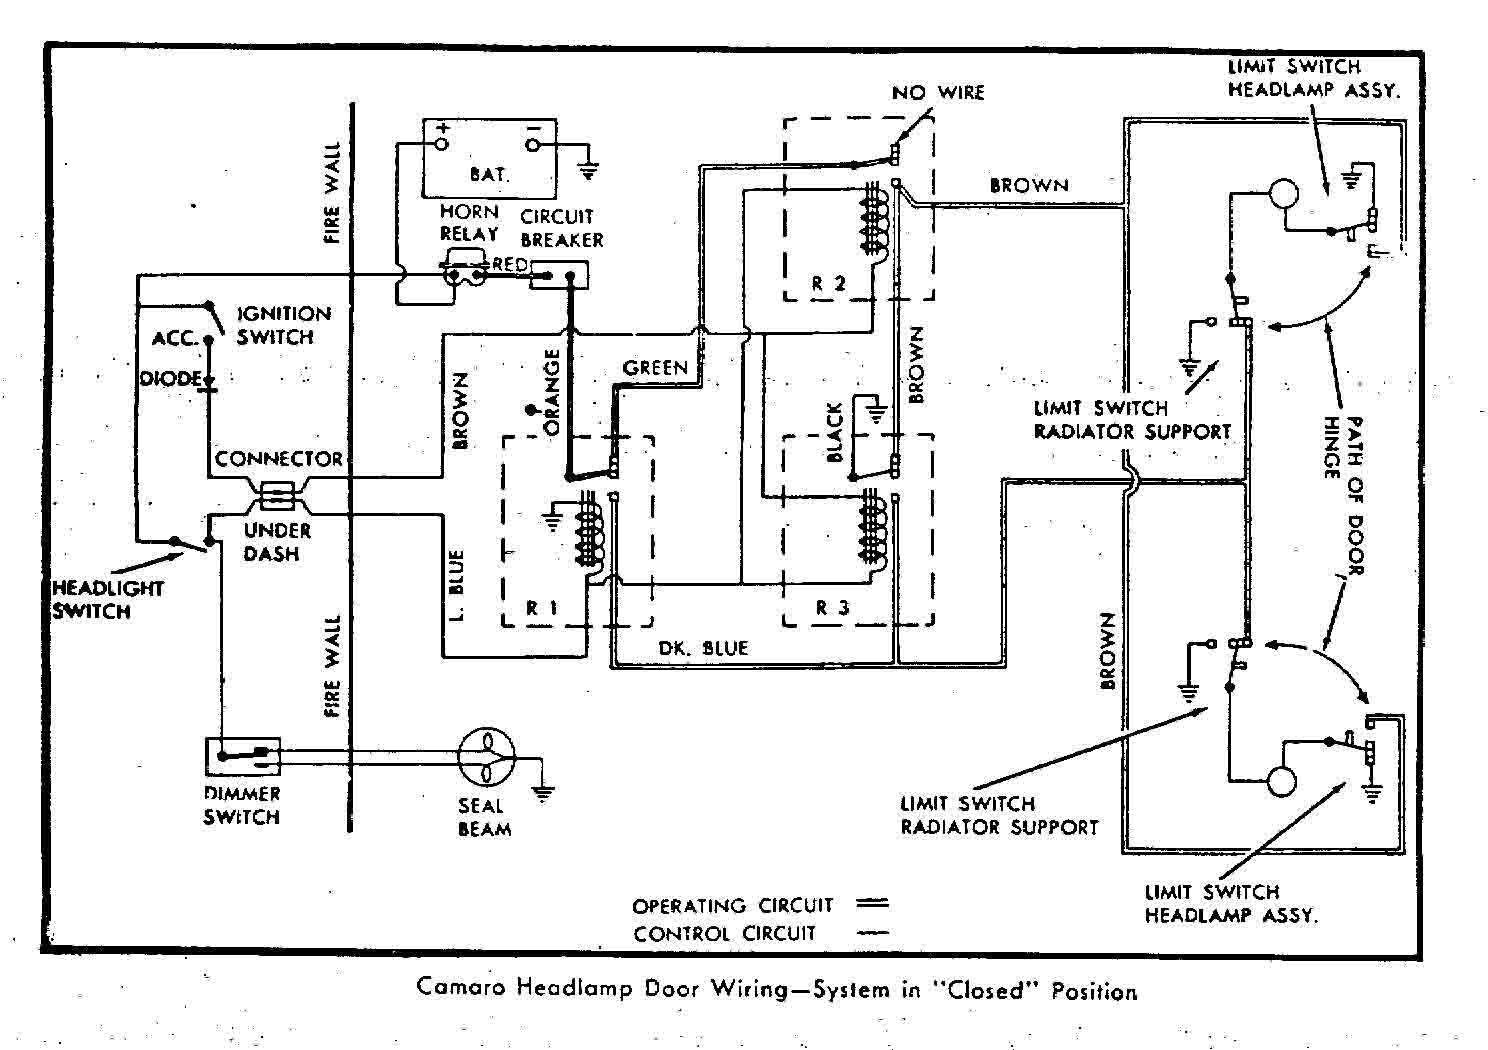 camaro wiring diagram image wiring diagram 1967 camaro rs on 2015 camaro wiring diagram